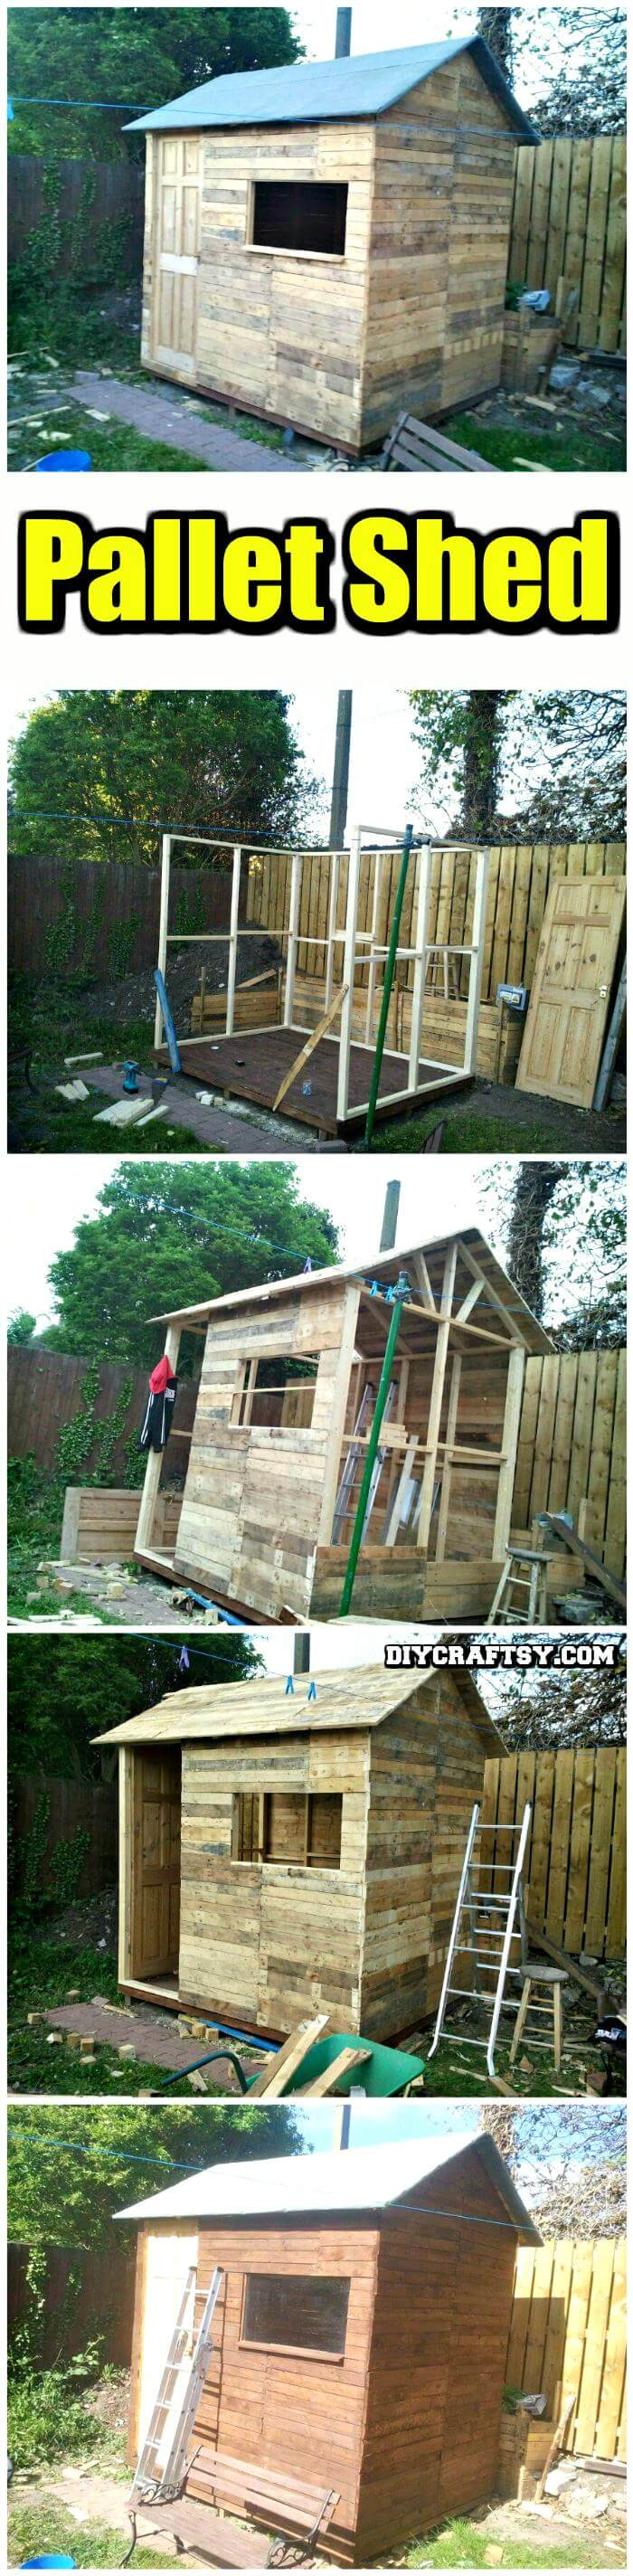 150 Best DIY Pallet Projects and Pallet Furniture Crafts ...